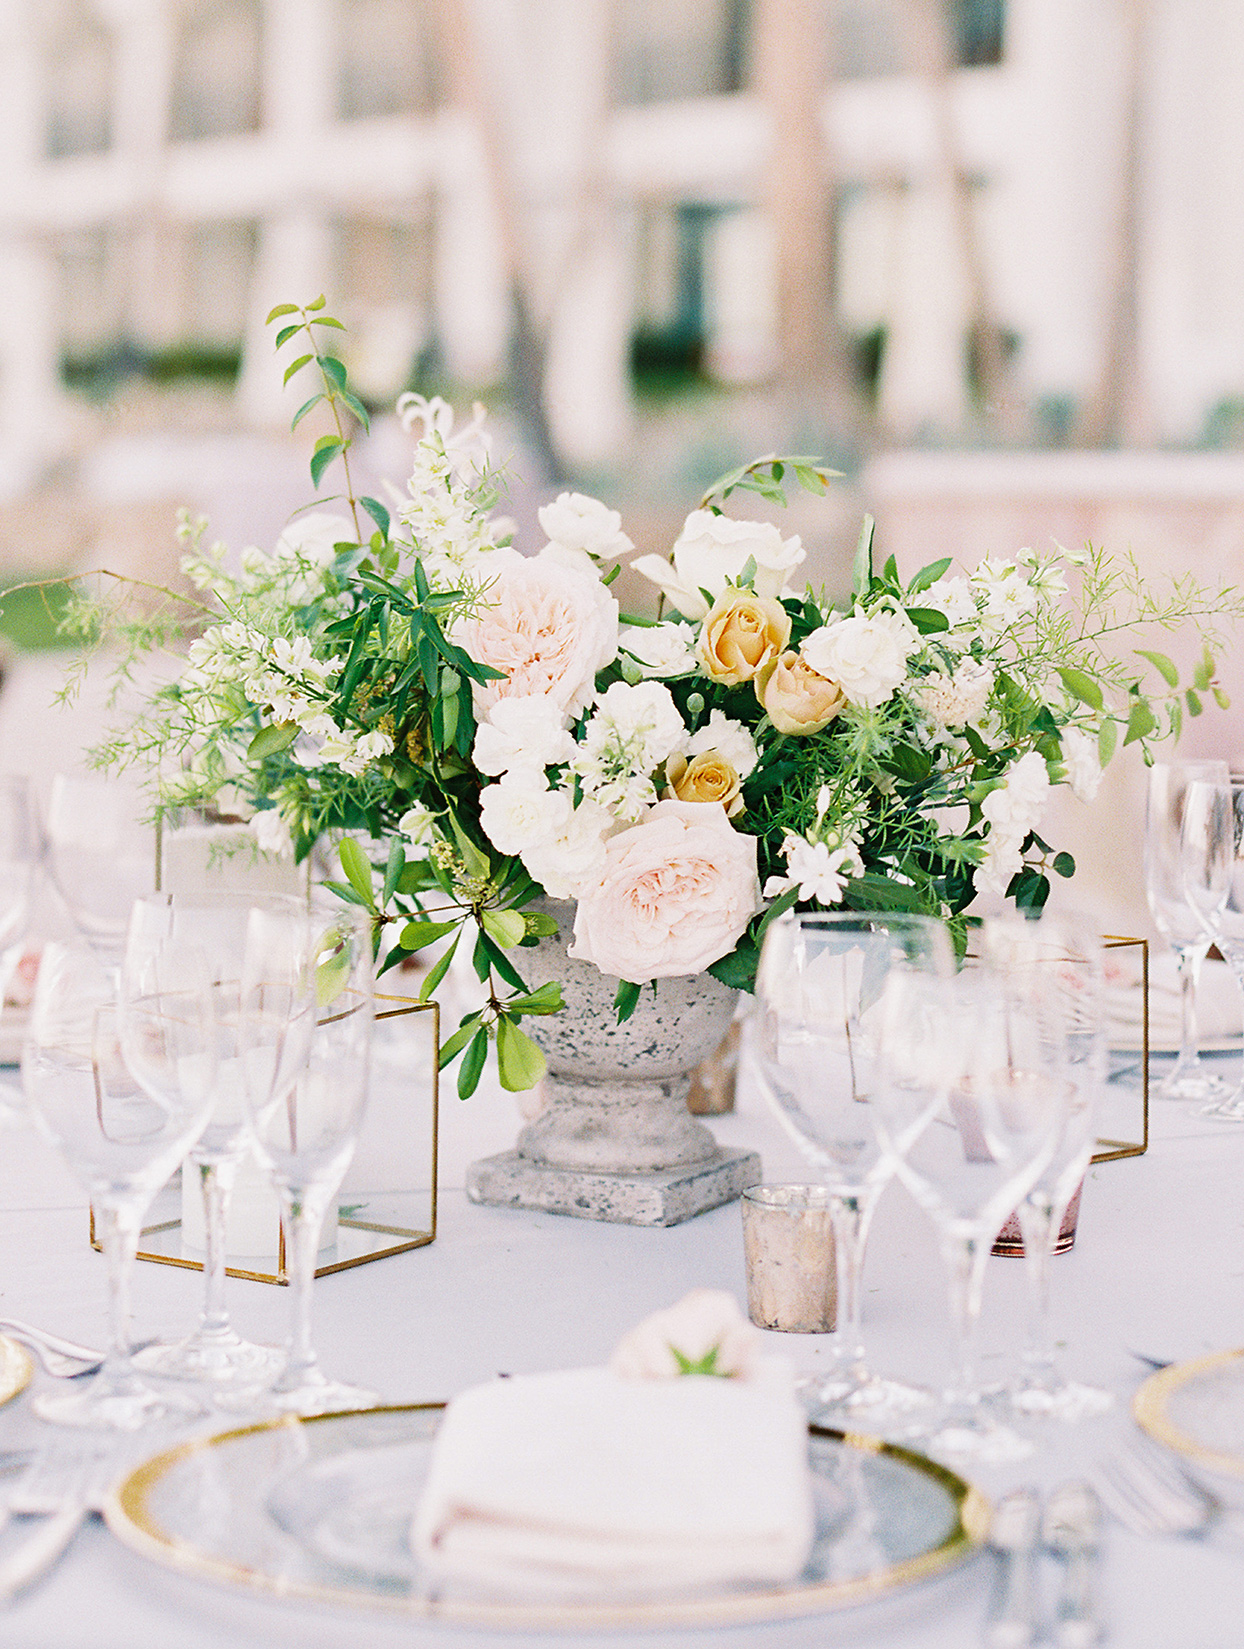 kirsten deran wedding floral centerpiece